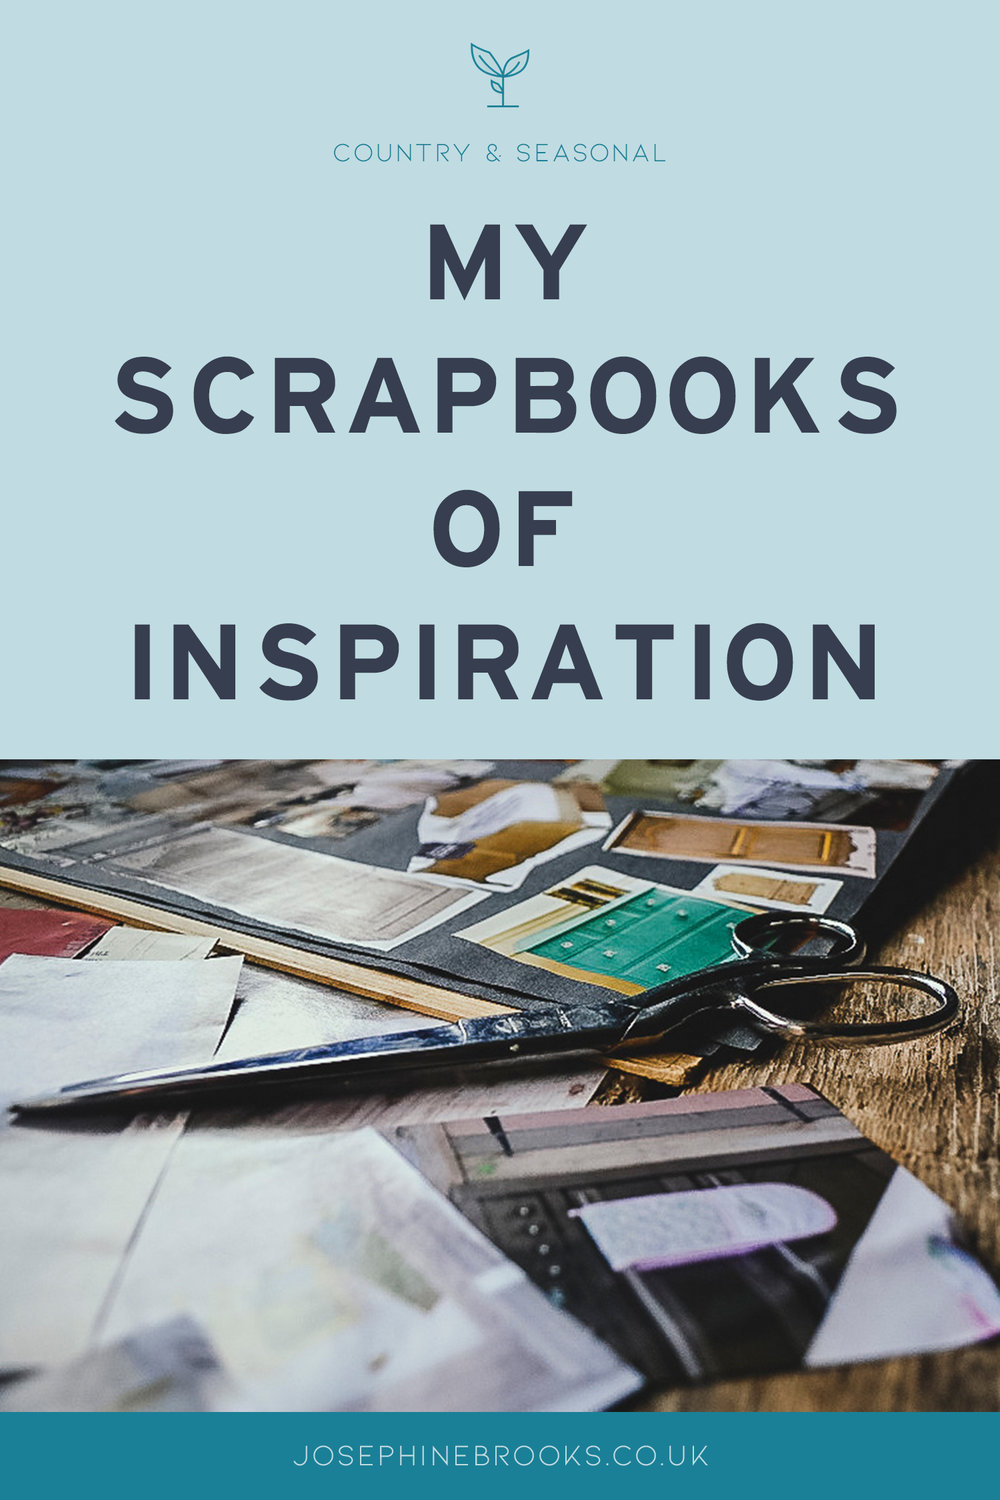 My scrapbooks of inspiration - a sneak peek inside my scrapbook where I keep magazine cutting for my own creative inspiration and for getting over creative's block!